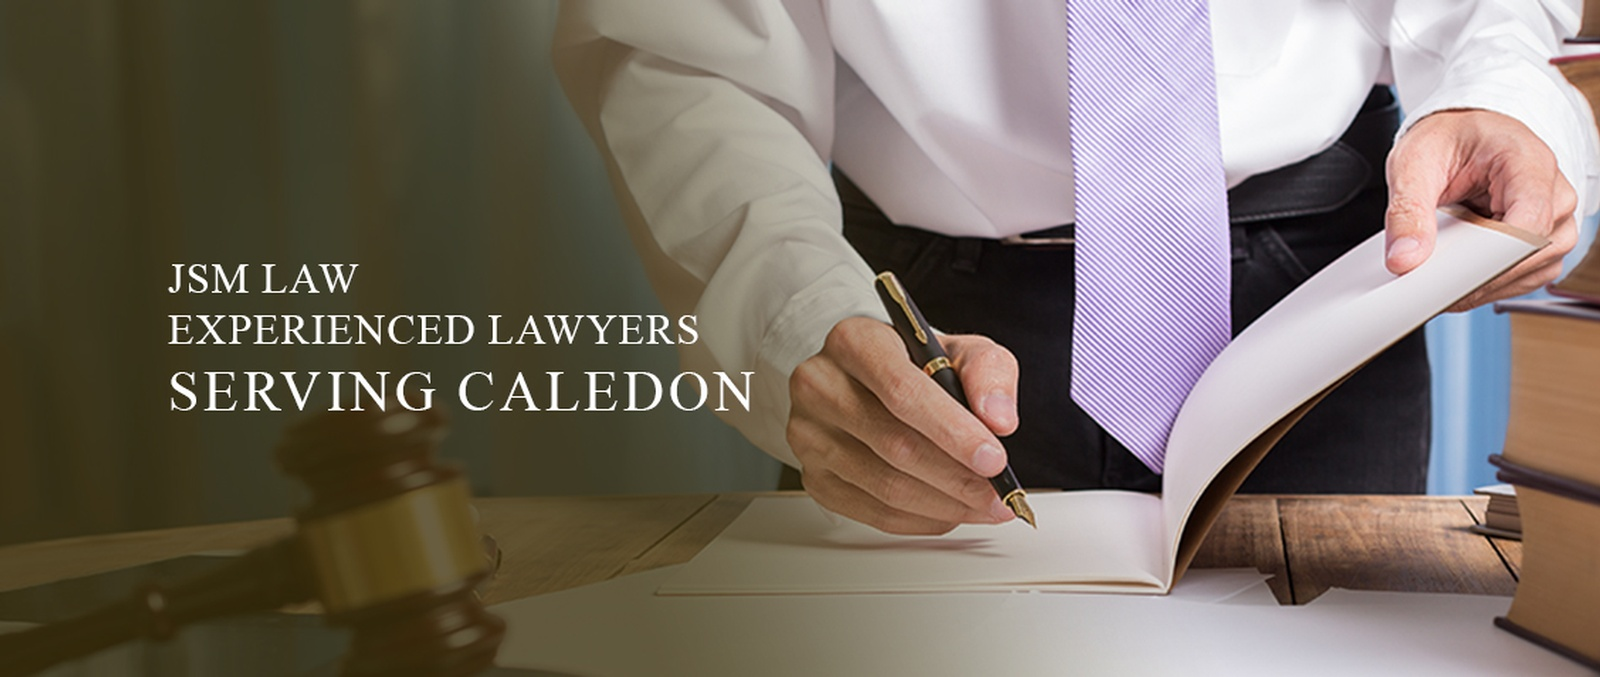 CORPORATE, CRIMINAL AND PERSONAL INJURY LAWYERS CALEDON ON